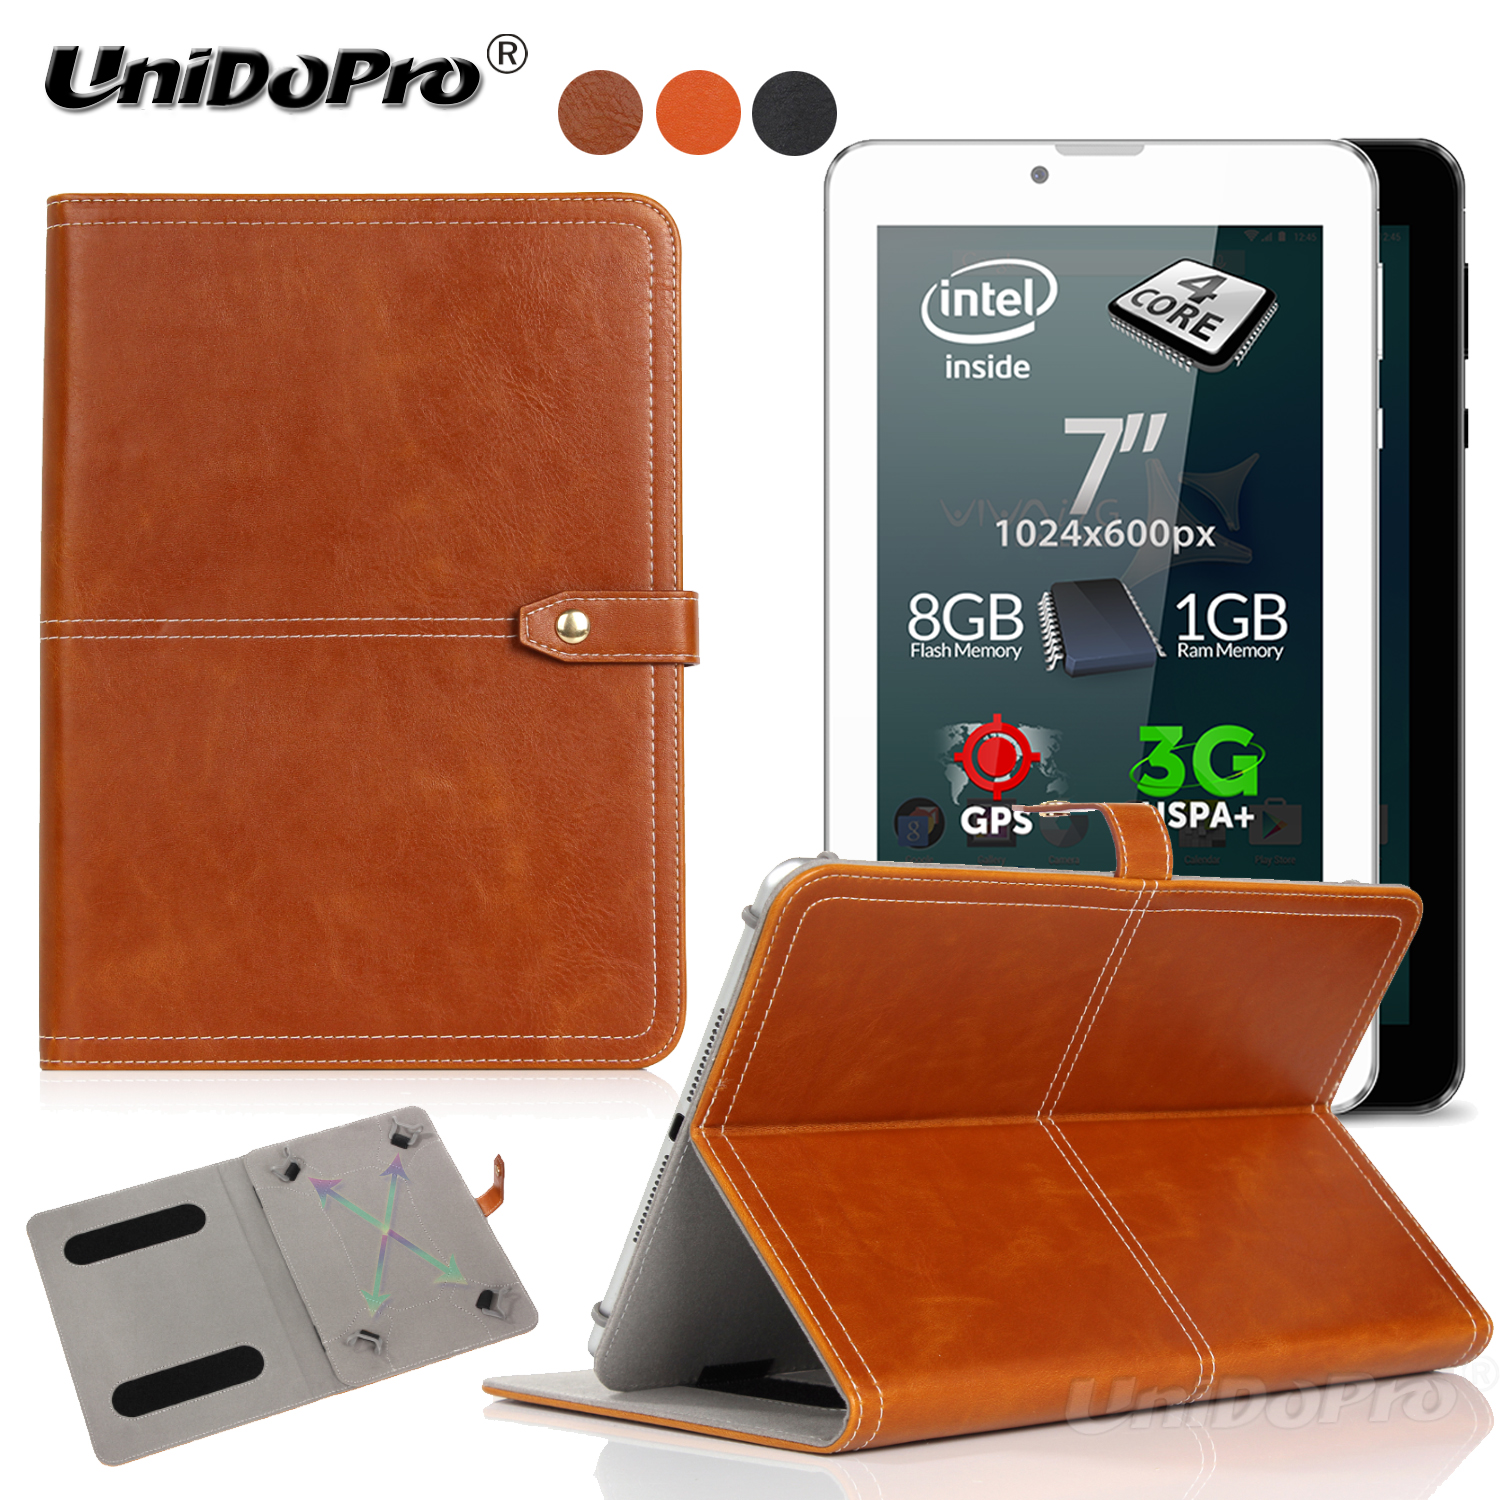 Unidopro Shockproof PU Leather Protective Folio Case for Amazon Kindle / Fire HDX 8.9 Tablet Conque w/ Multi-angle Stand Cover for amazon kindle fire hd 8 hd8 2016 8 0 inch tablet shockproof case for amazon fire hd8 2016 kids baby safe back cover fundas